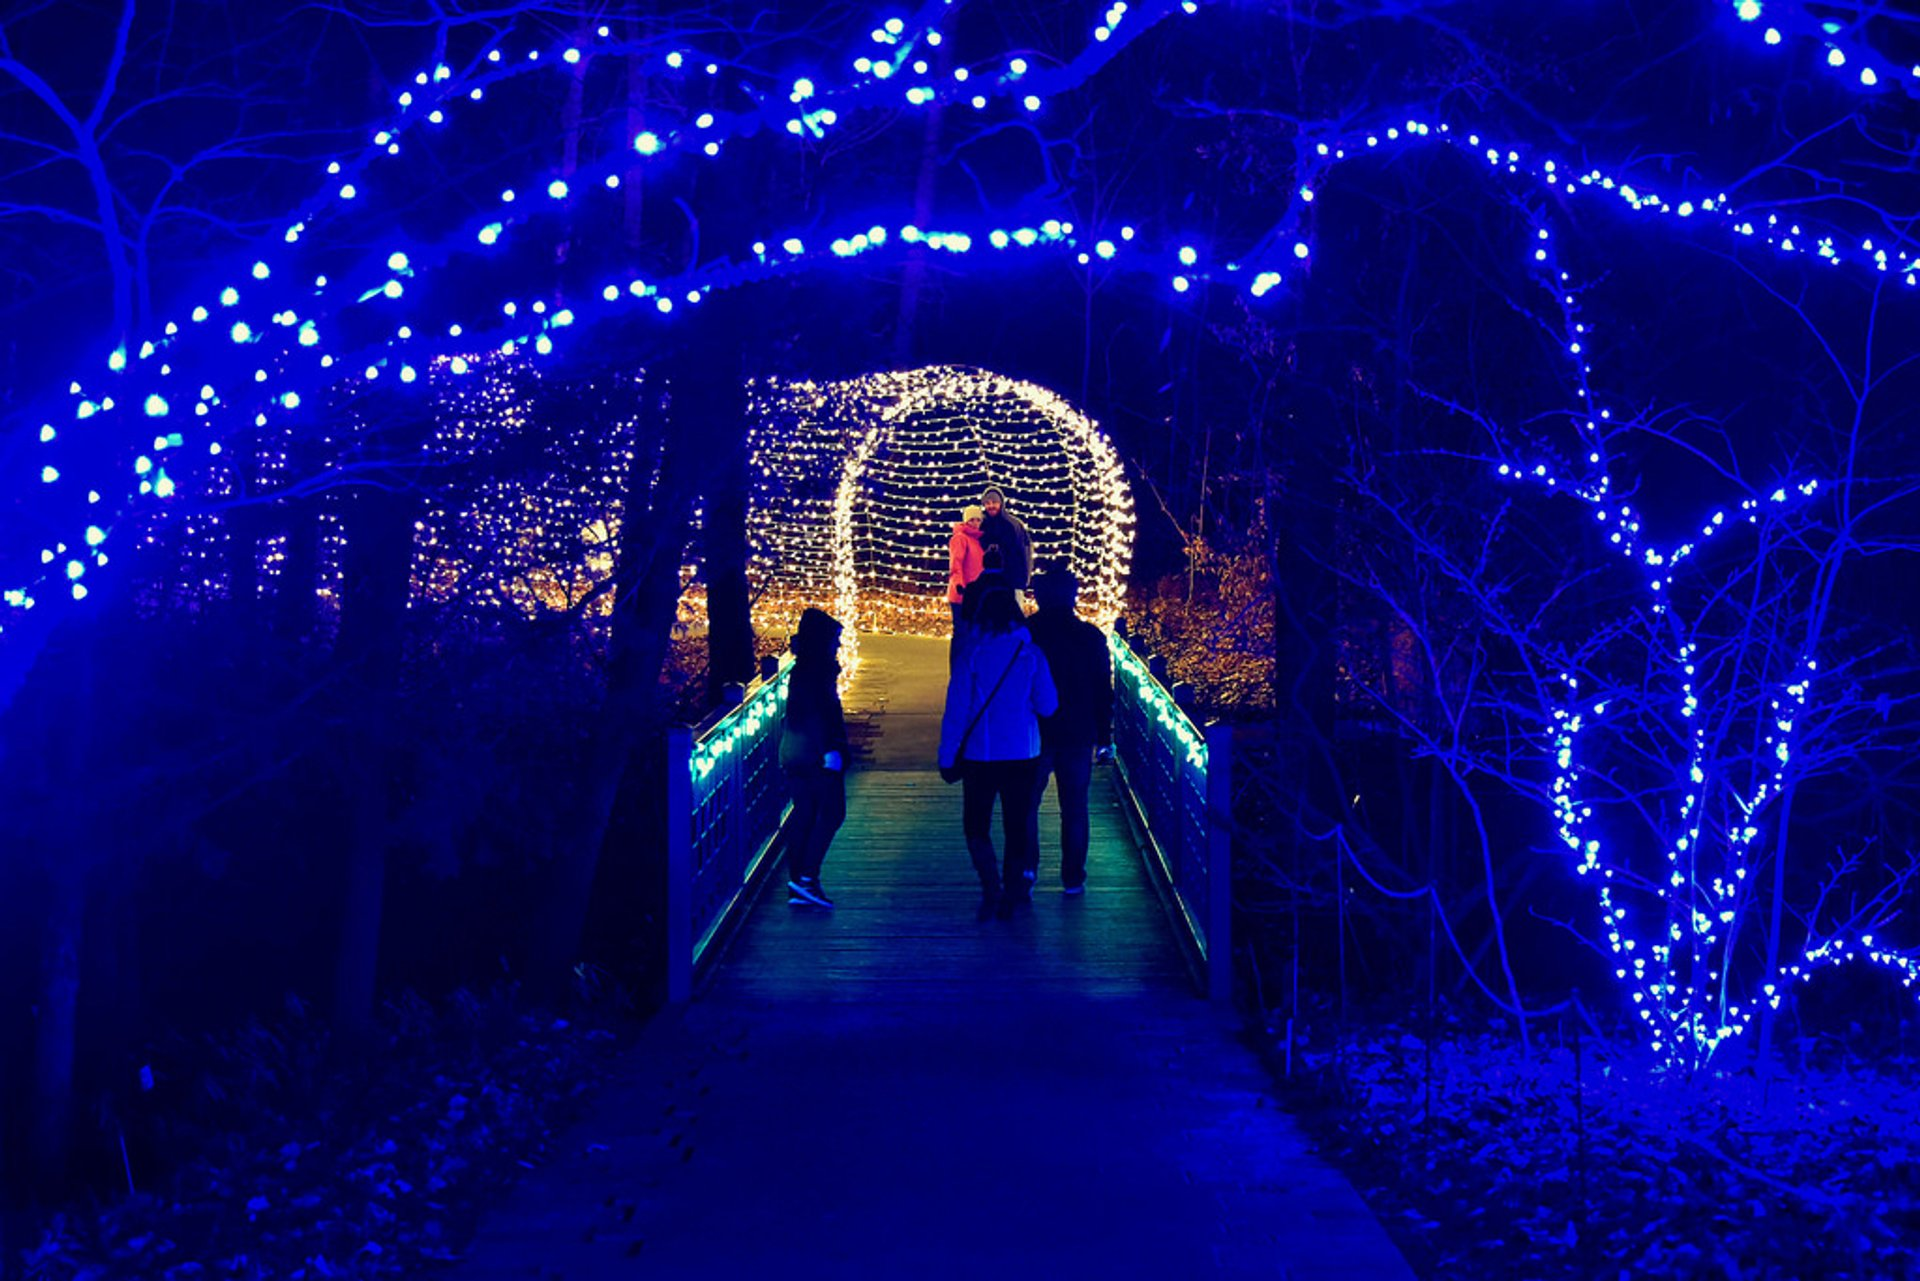 Powell Gardens Festival of Lights in Midwest 2020 - Best Time